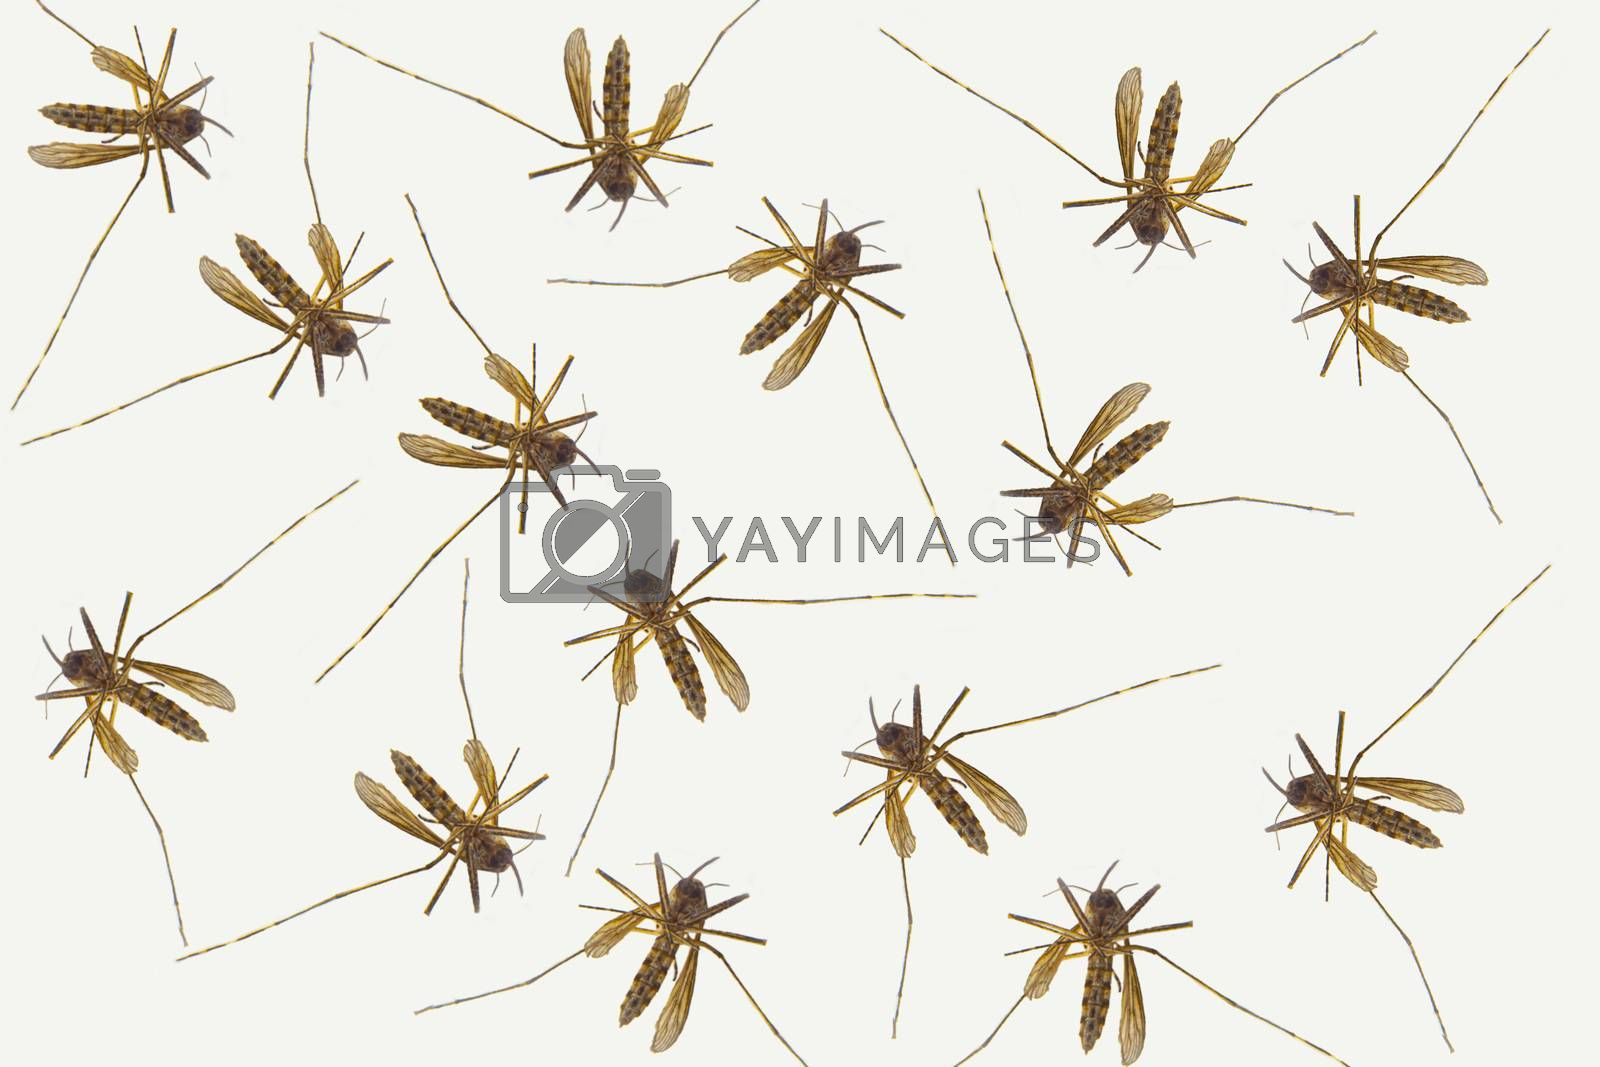 Several Mosquitoes on a white background. Concept: Mosquito season